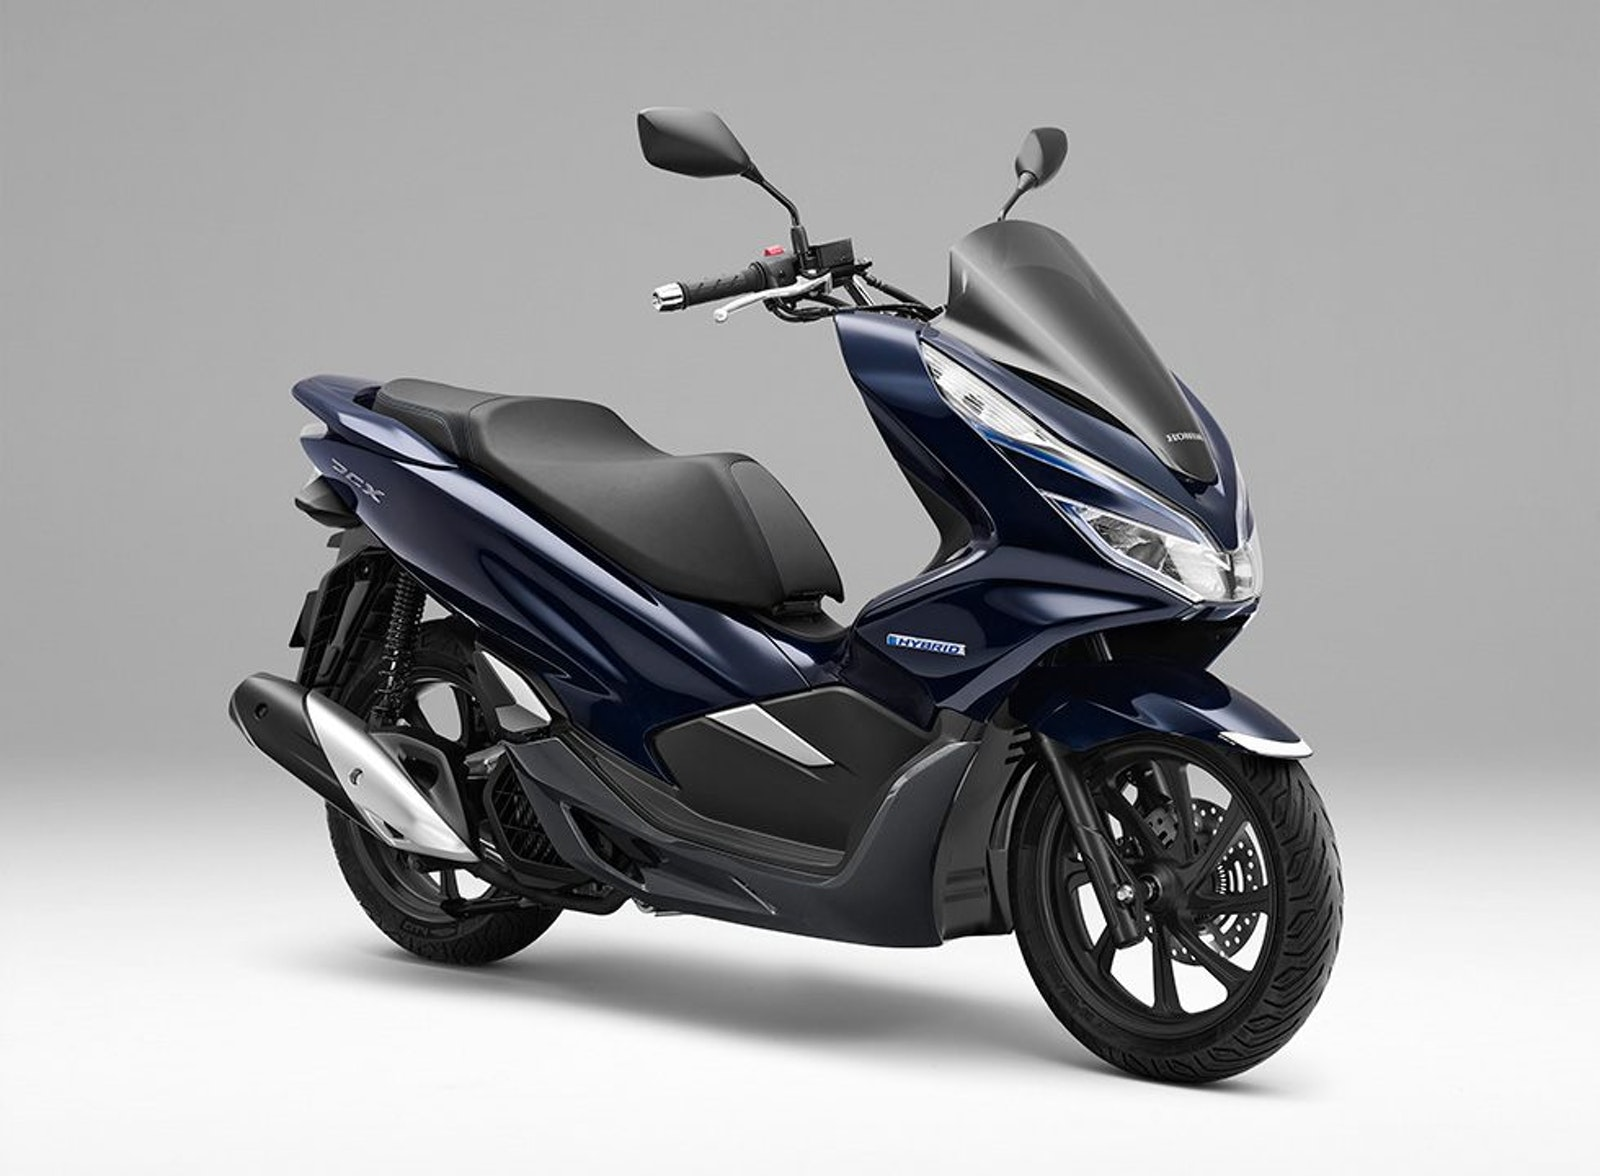 Honda Announced That The Latest Addition To Pcx Series Por For Its Stylish Design And Environmentally Friendly Engines Hybrid World S